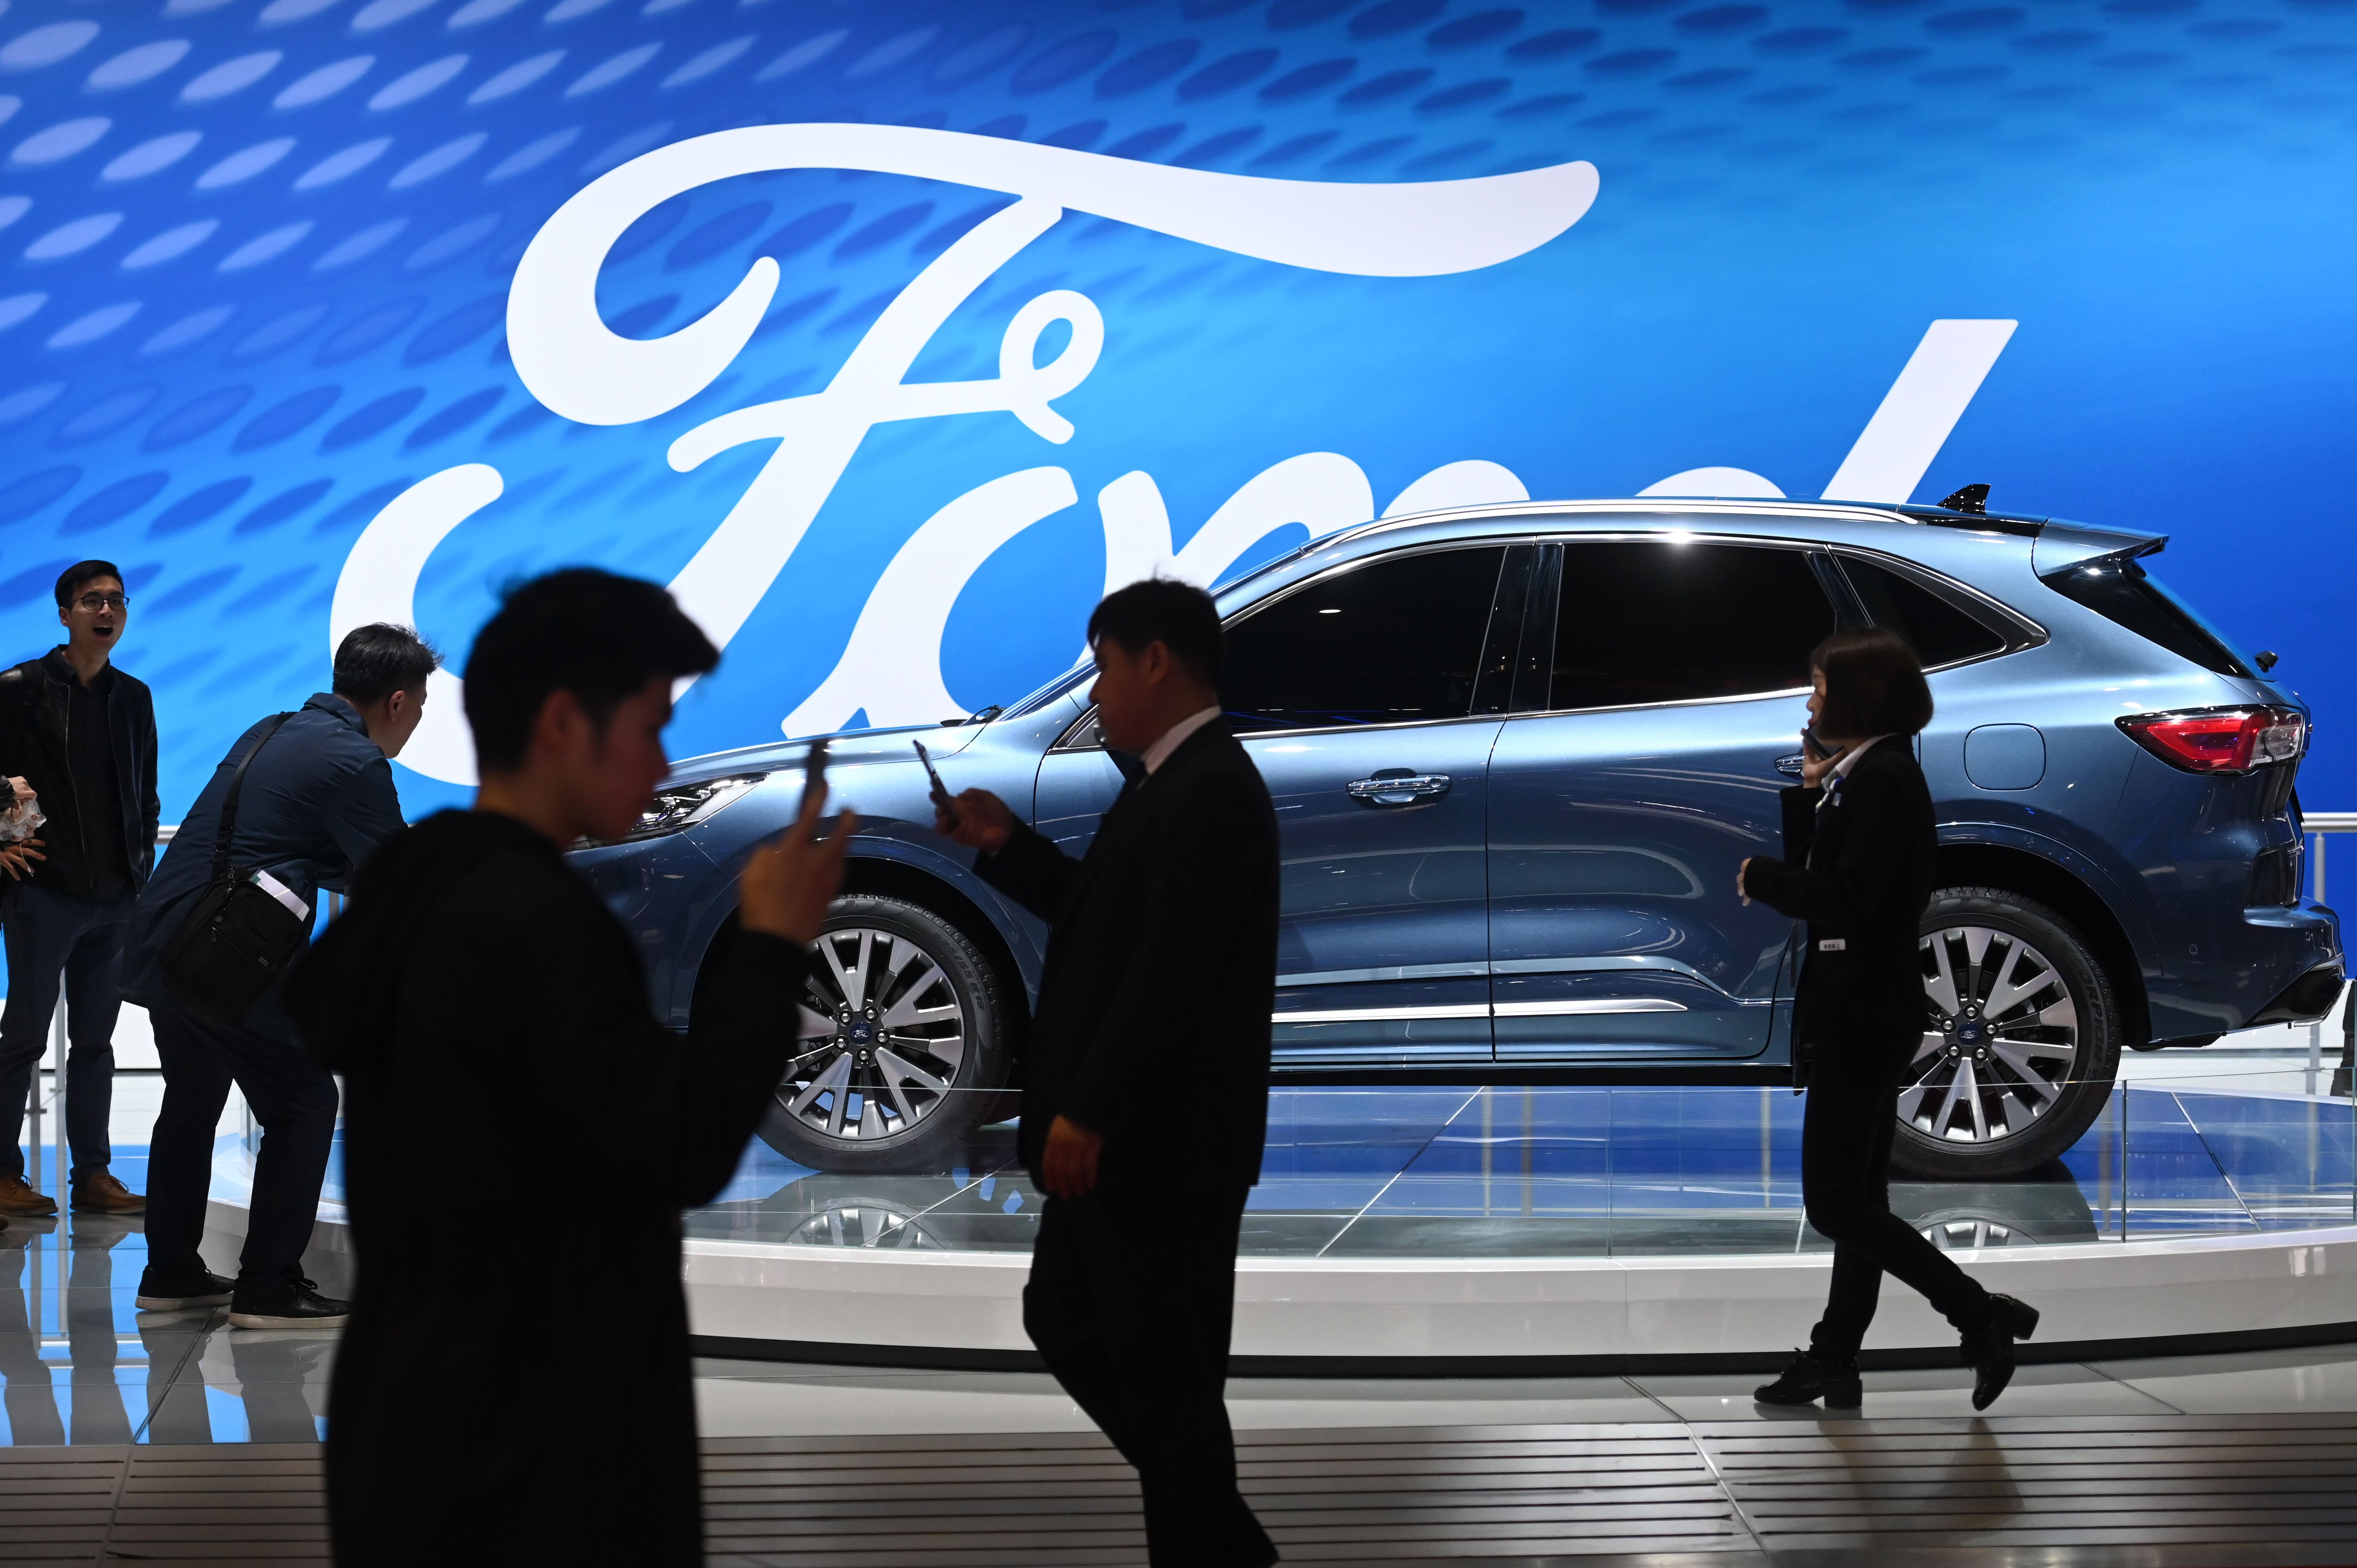 Stocks making the biggest moves midday: Ford, Tesla, Coty, Snap, Spotify & more